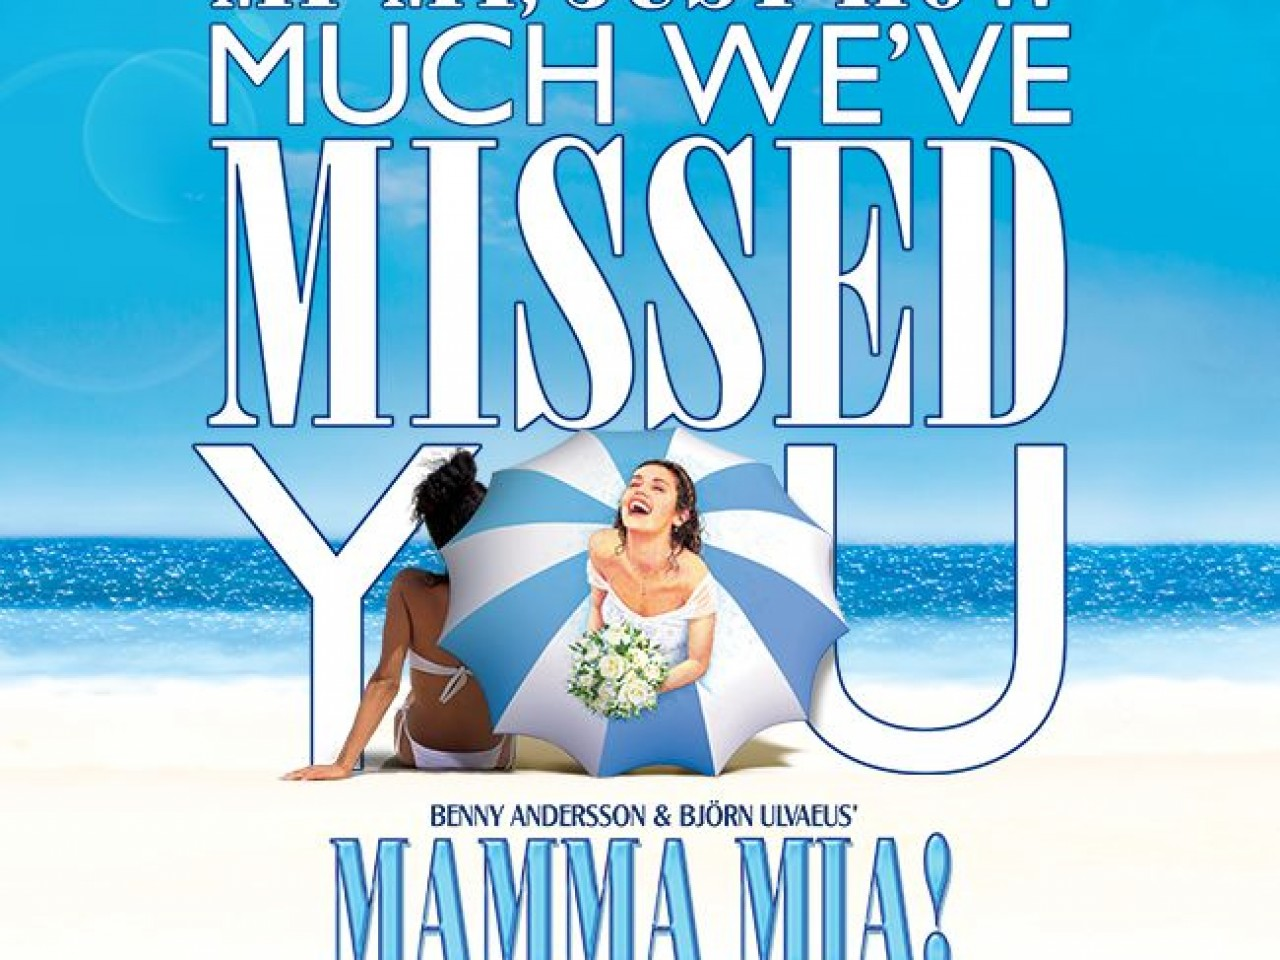 Mamma Mia Hotel & Ticket packages